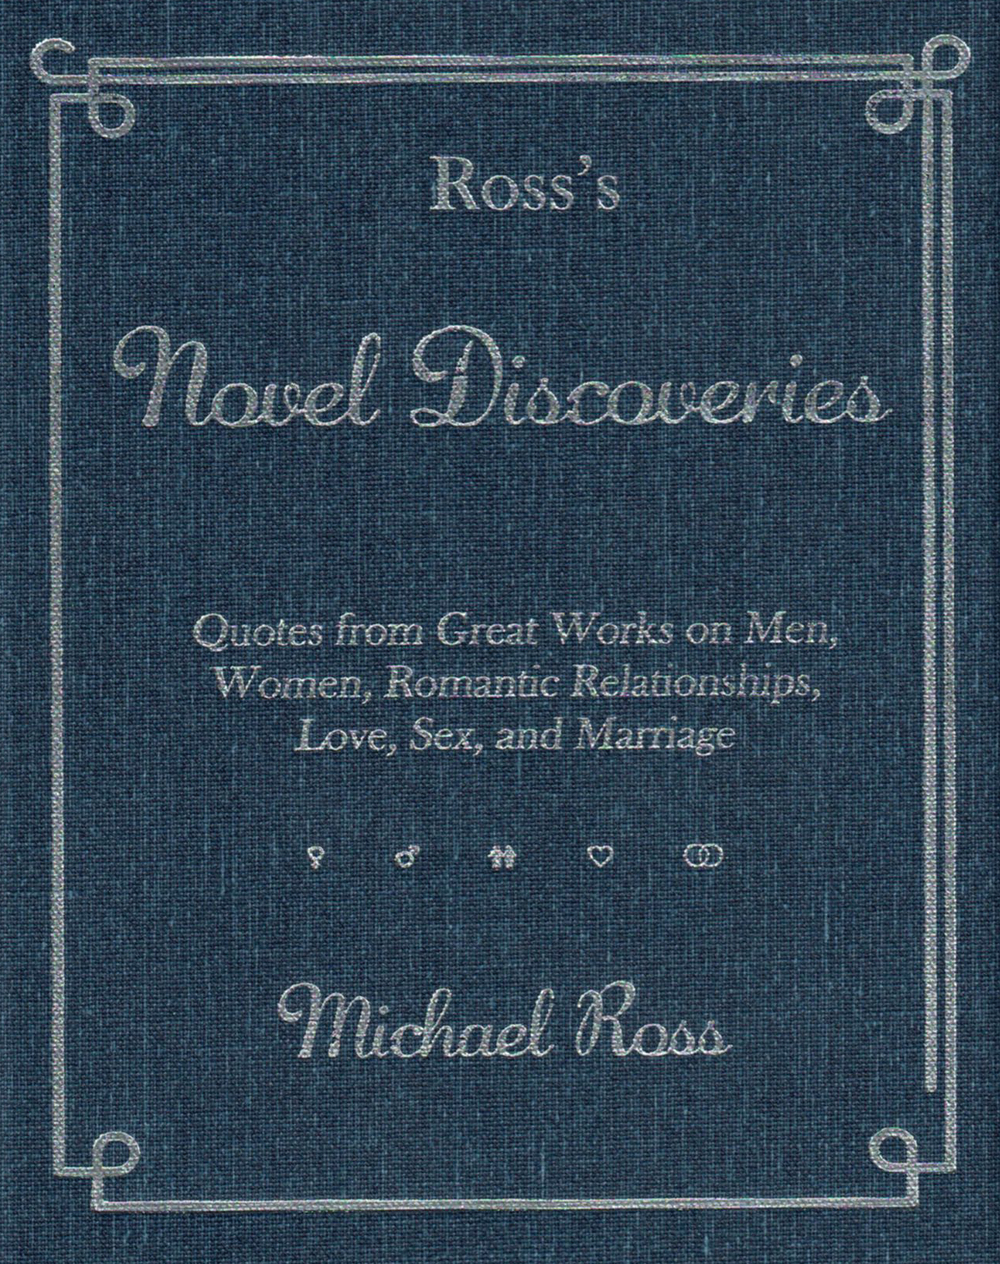 Novel Discoveries Front Cover Stamped rgb 300 dpi.jpg